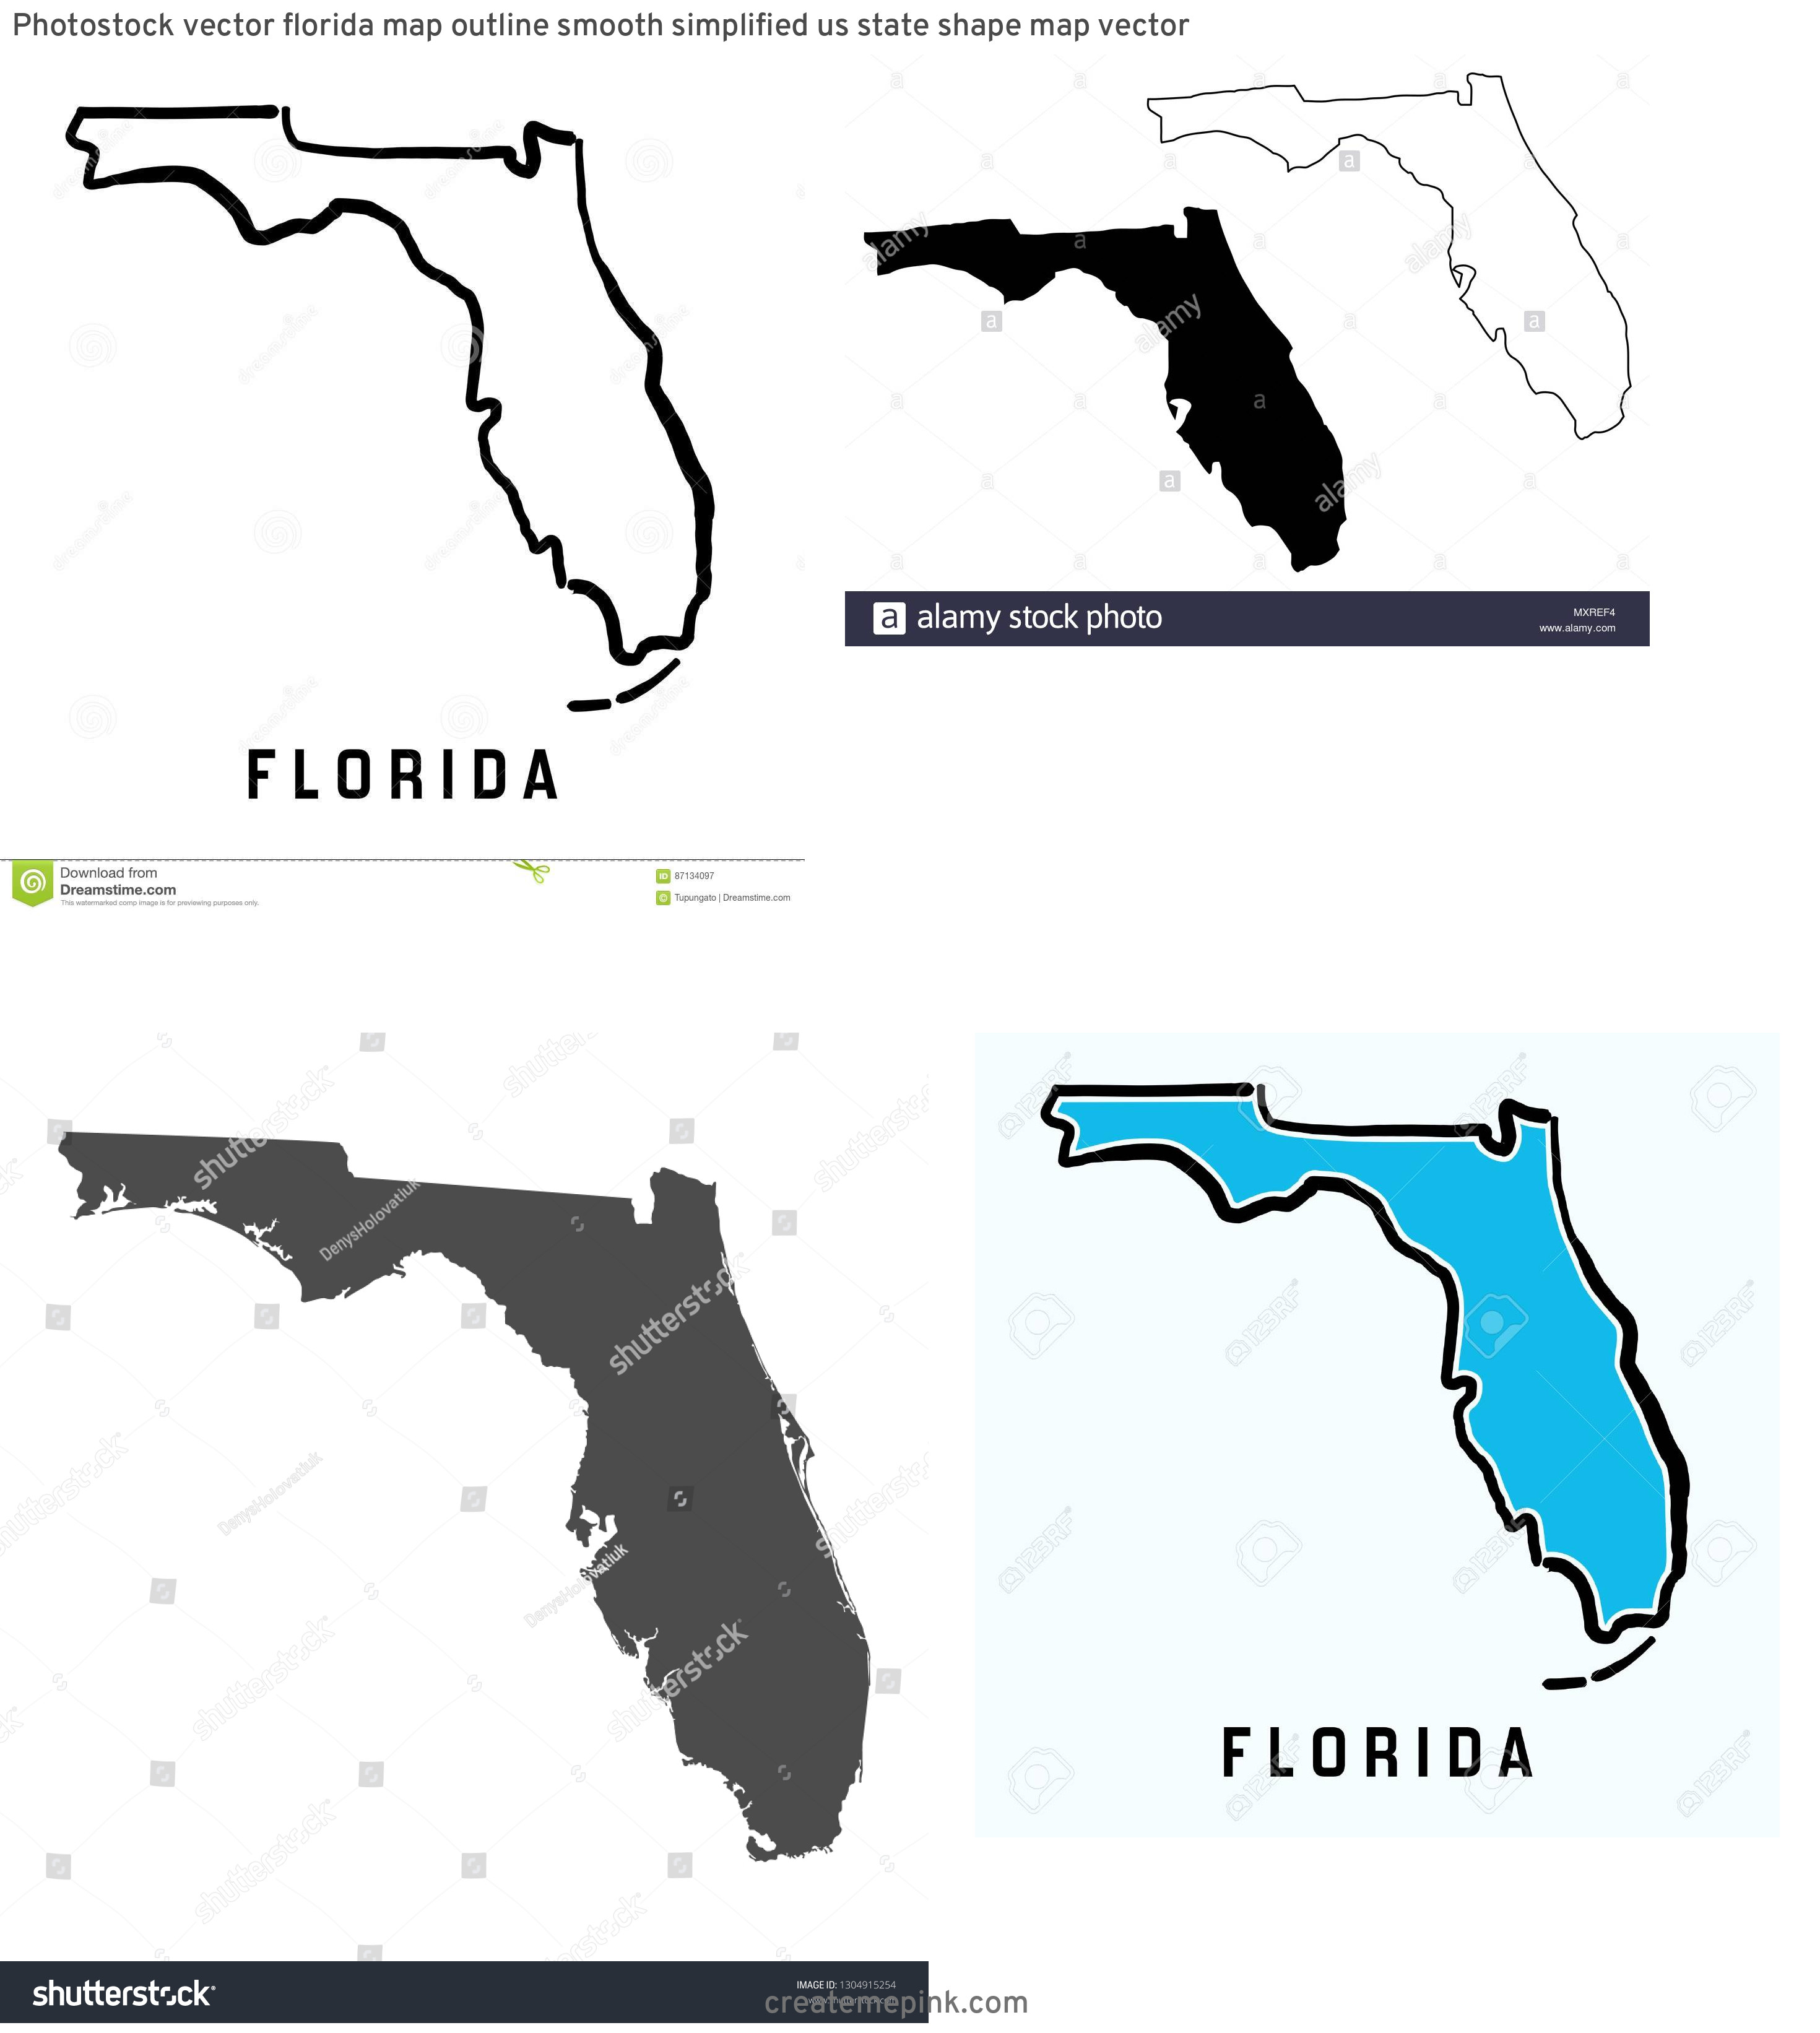 Florida Map Vector: Photostock Vector Florida Map Outline Smooth Simplified Us State Shape Map Vector